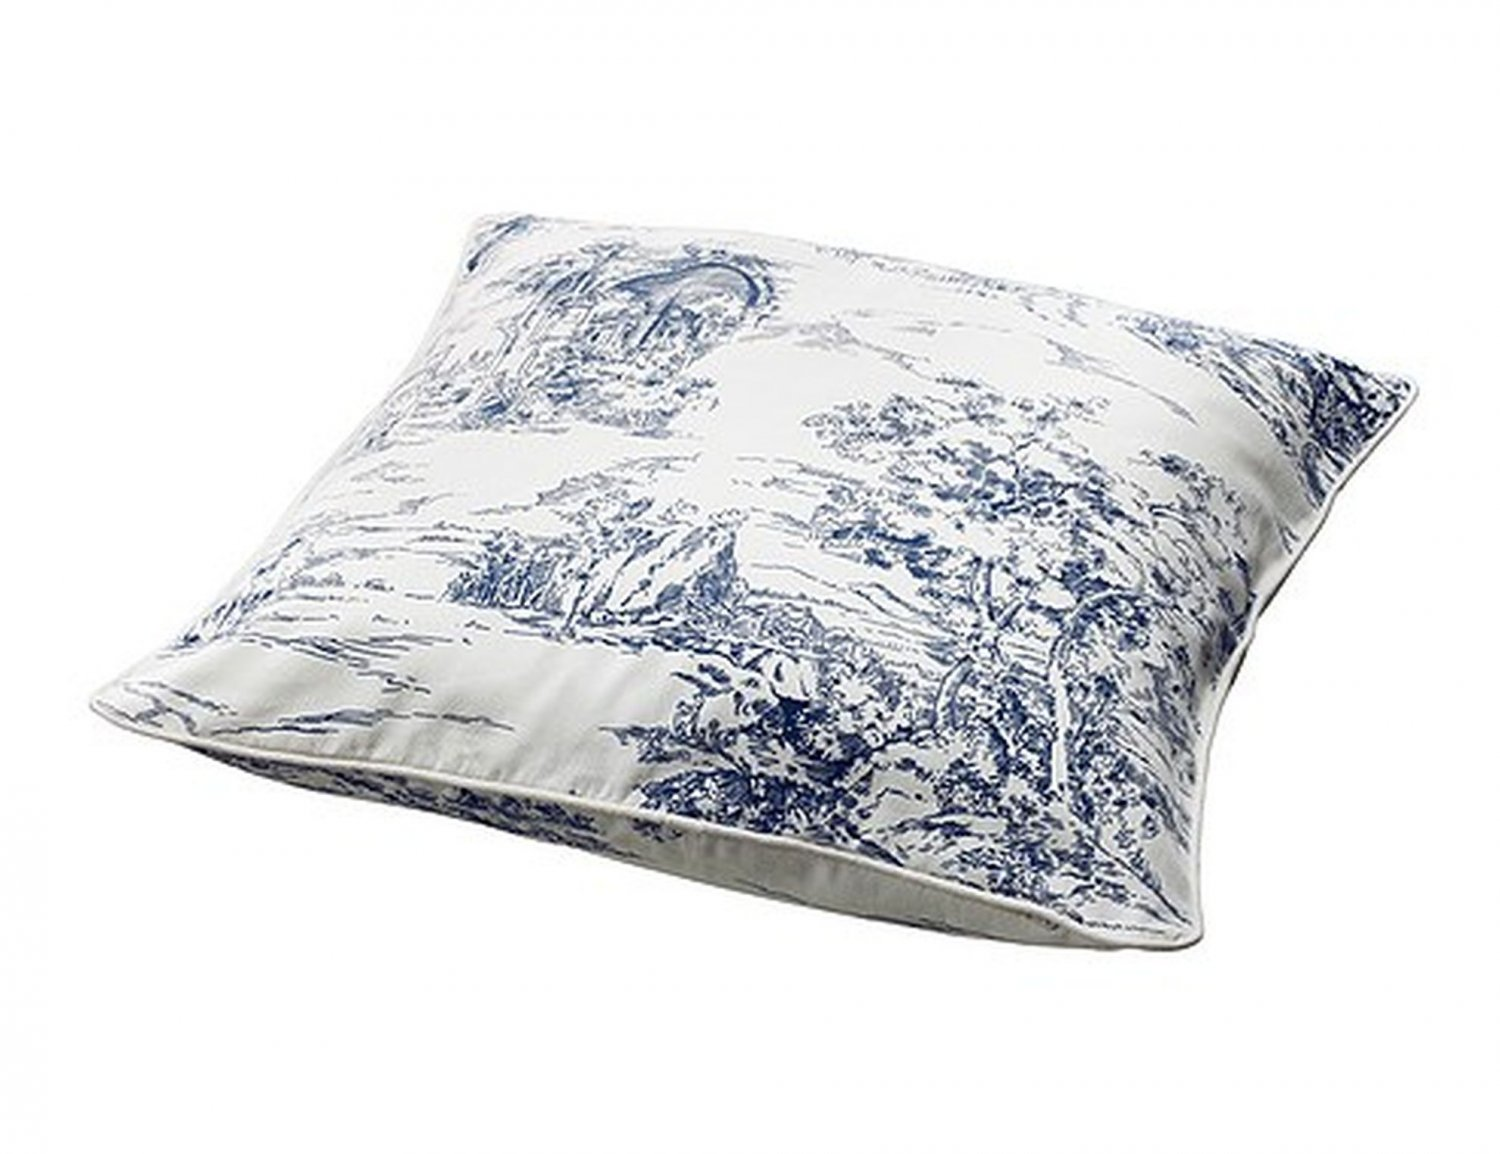 ikea emmie land cushion cover pillow sham toile blue white. Black Bedroom Furniture Sets. Home Design Ideas